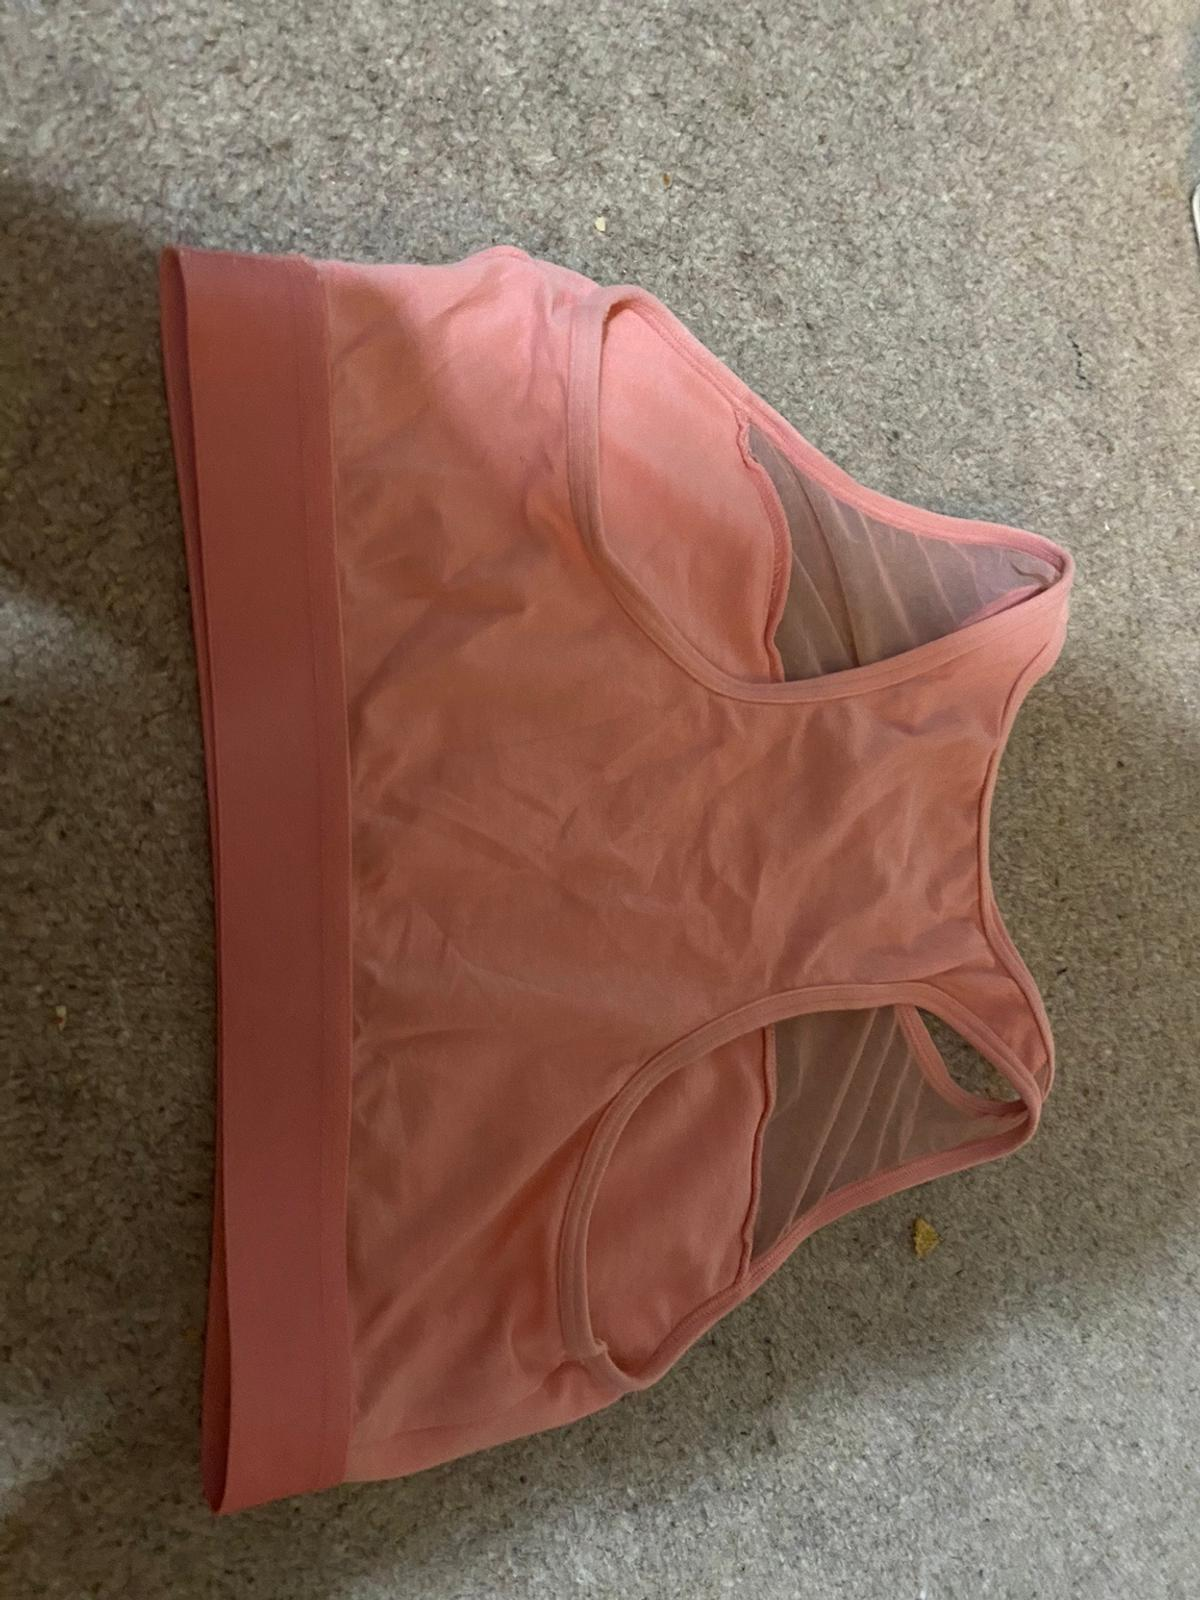 Tommy Hilfiger pink sports bra Hardly worn Size small Would fit uk 8-10